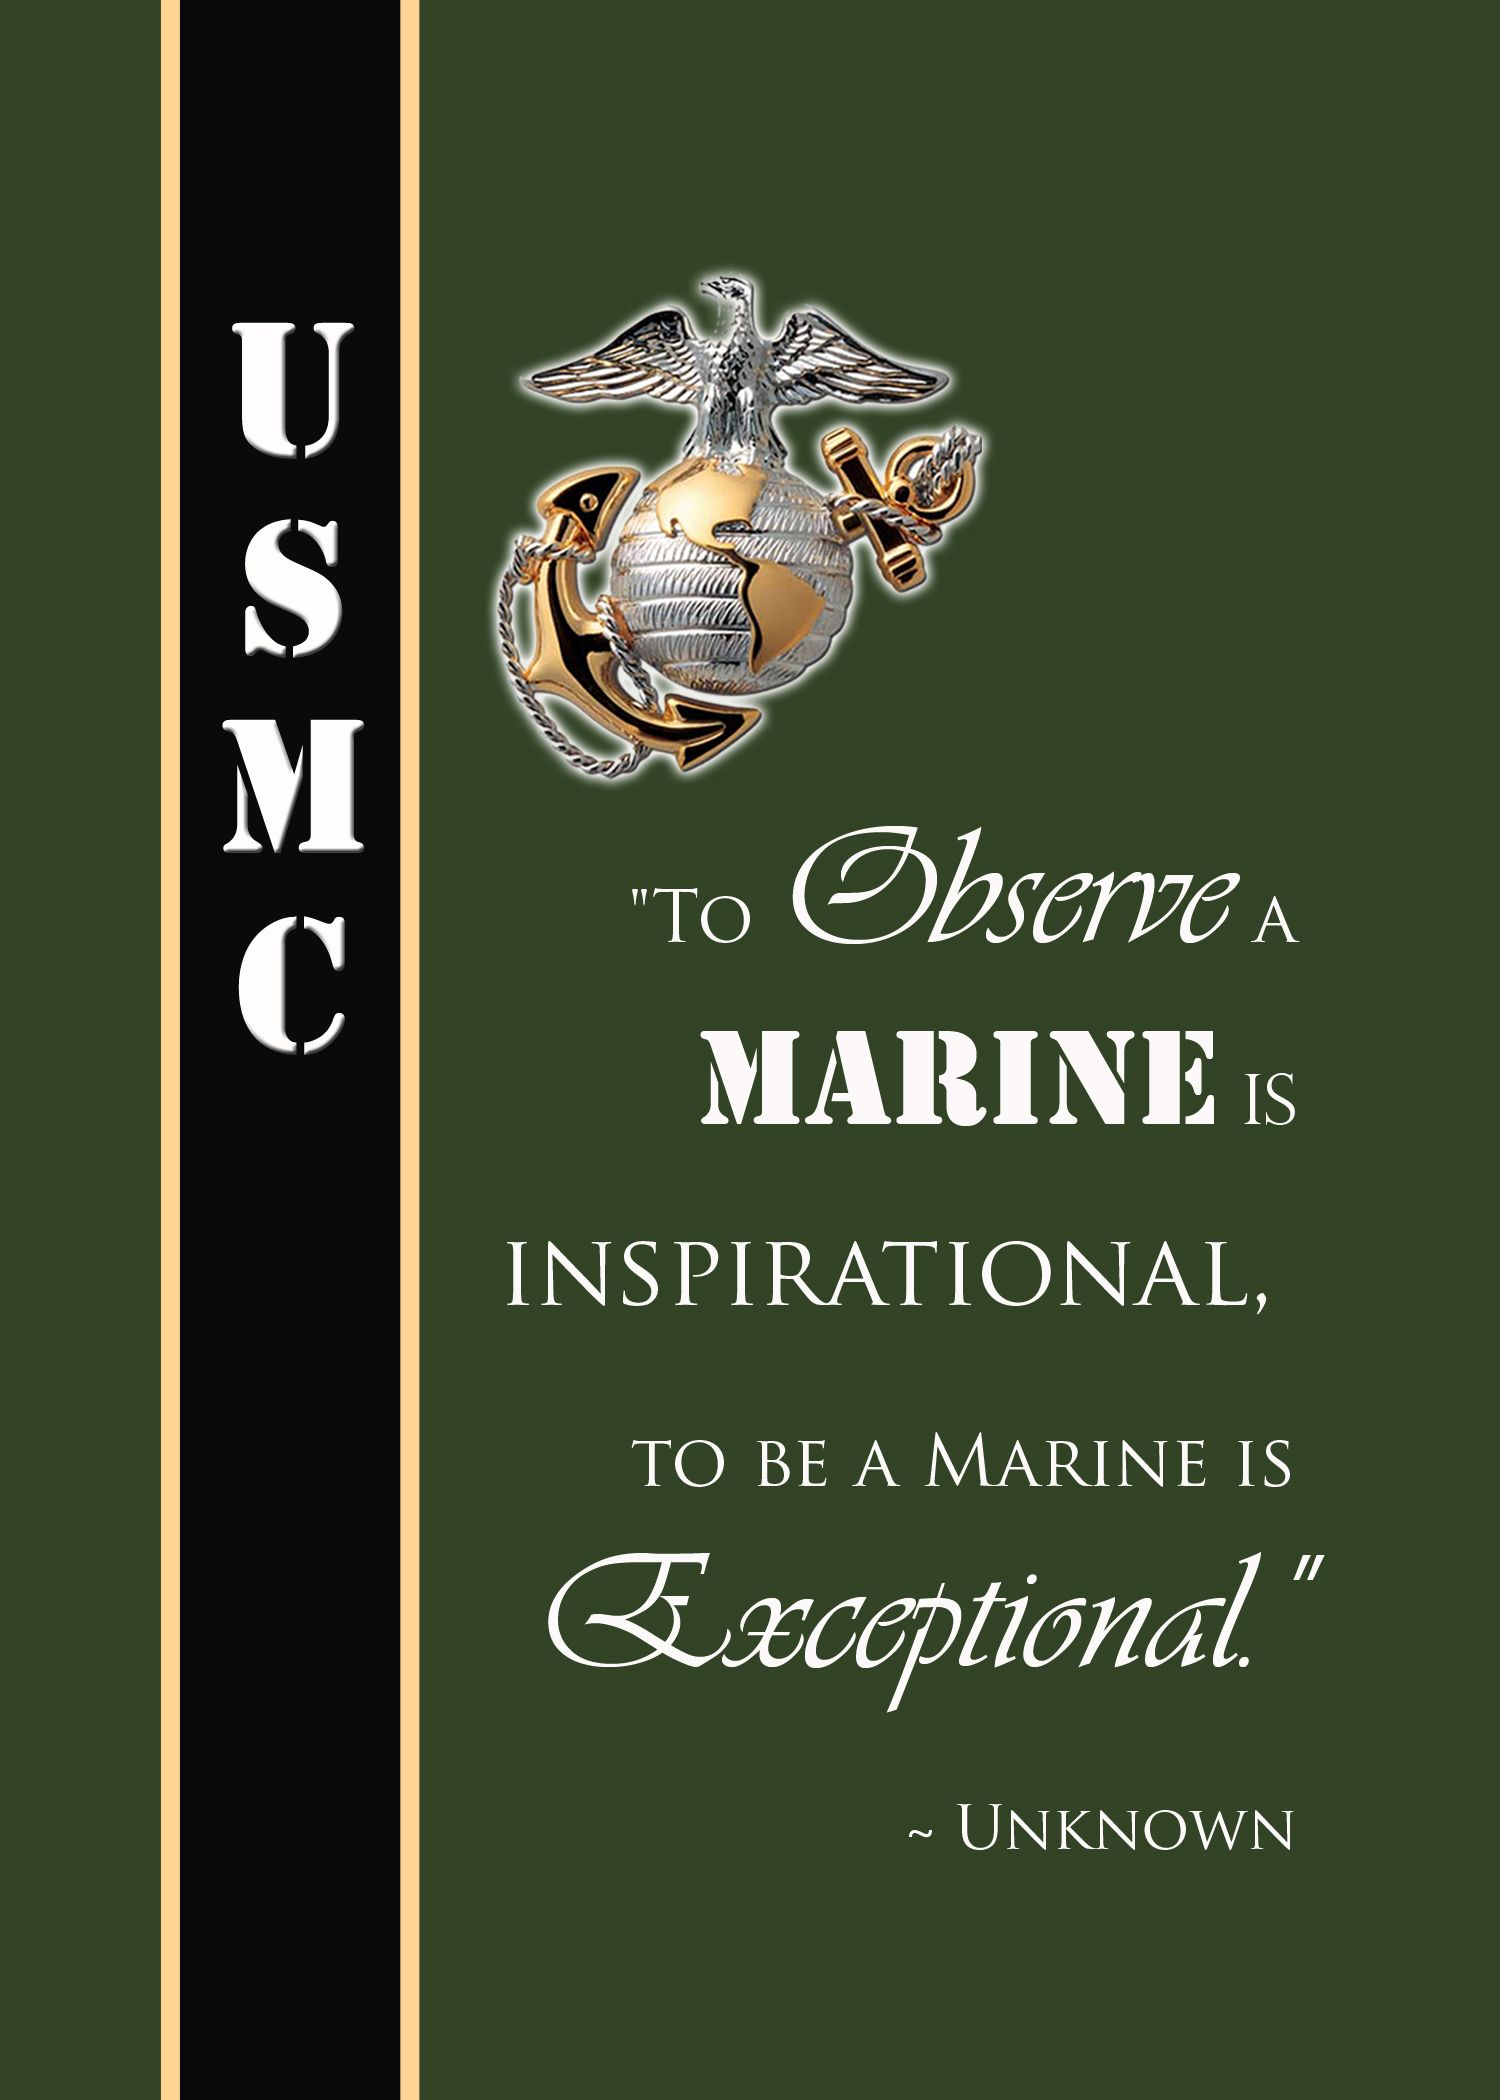 Marines Quotes Magnificent Famous Marine Quoteto Observe A Marine Is Inspirational To Be A